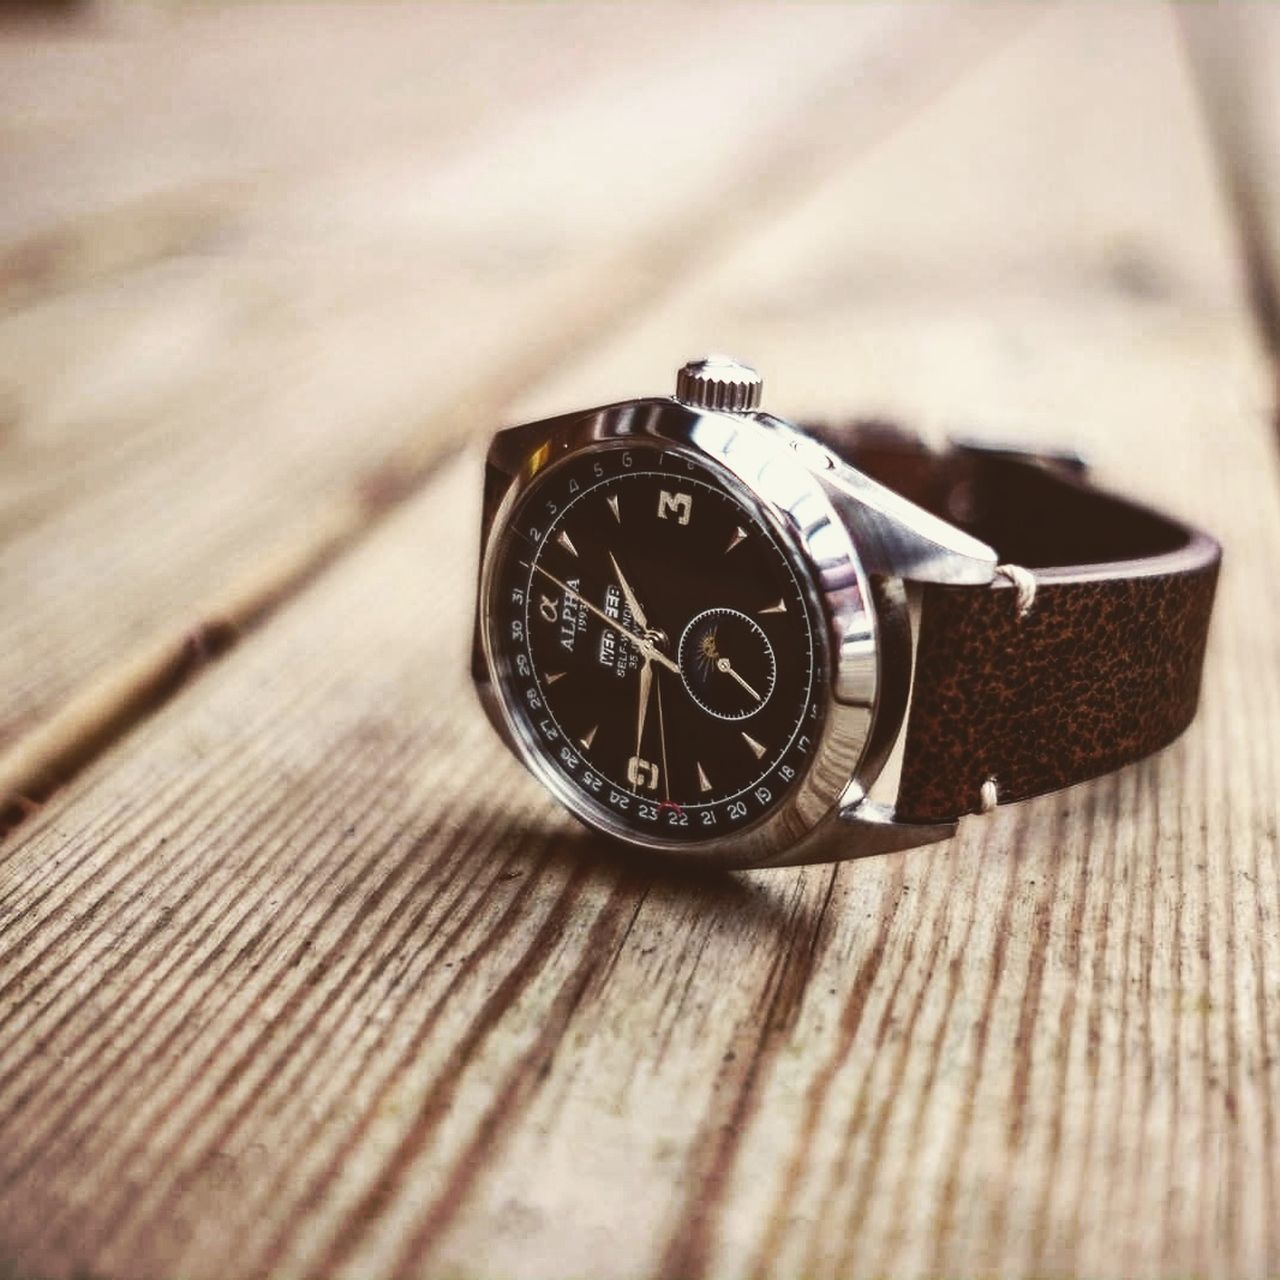 Clock Face Wood - Material Watch Personal Accessory Old-fashioned Fujifilm X-Pro1 Xf22mmf2 Watches Collecting Leather Vintage Classic Alpha Fujixseries